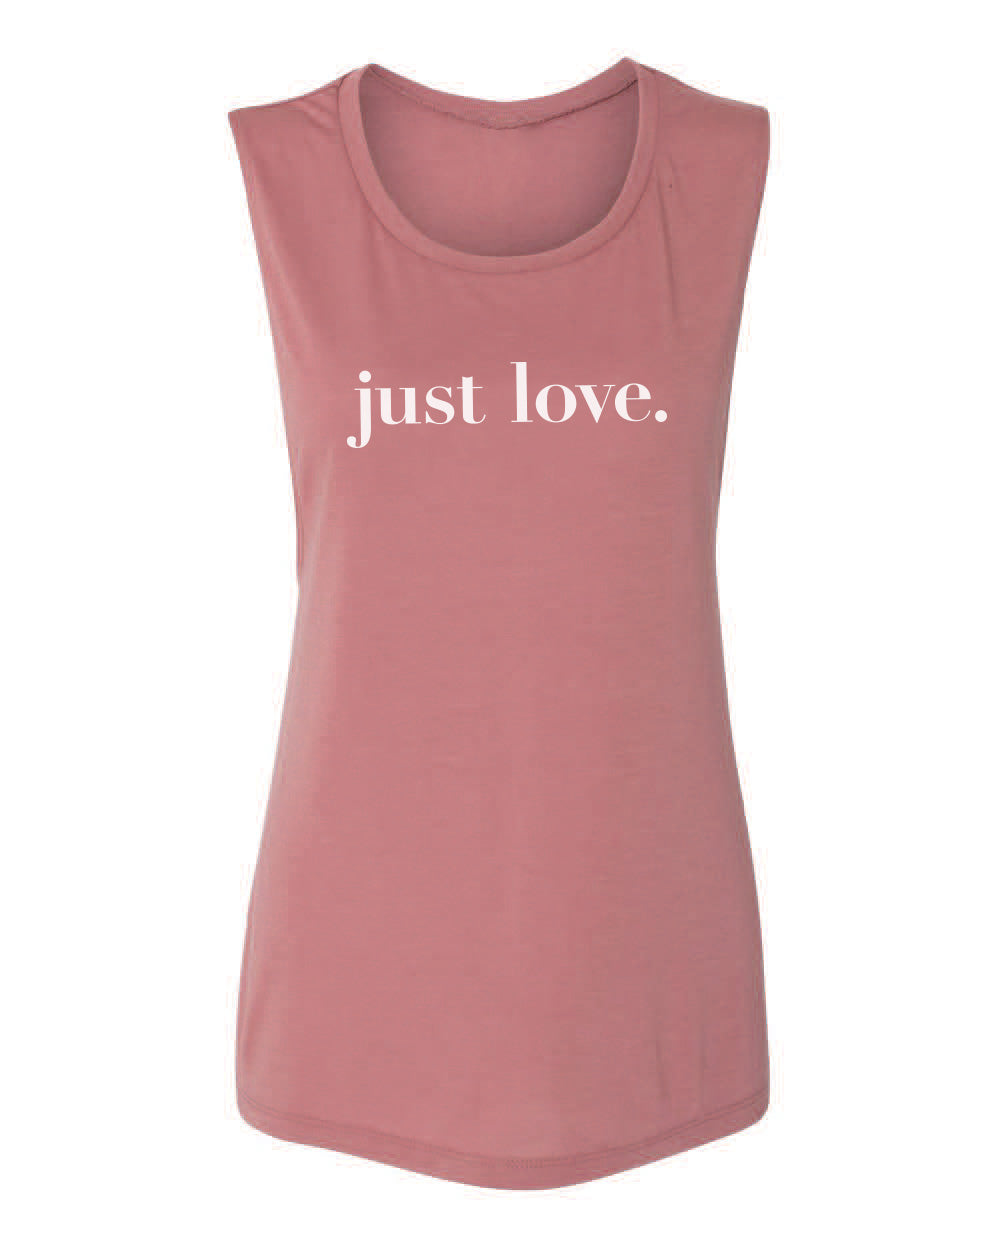 Just Love - Women's Flowy Muscle Tee - Mauve - Love Tee